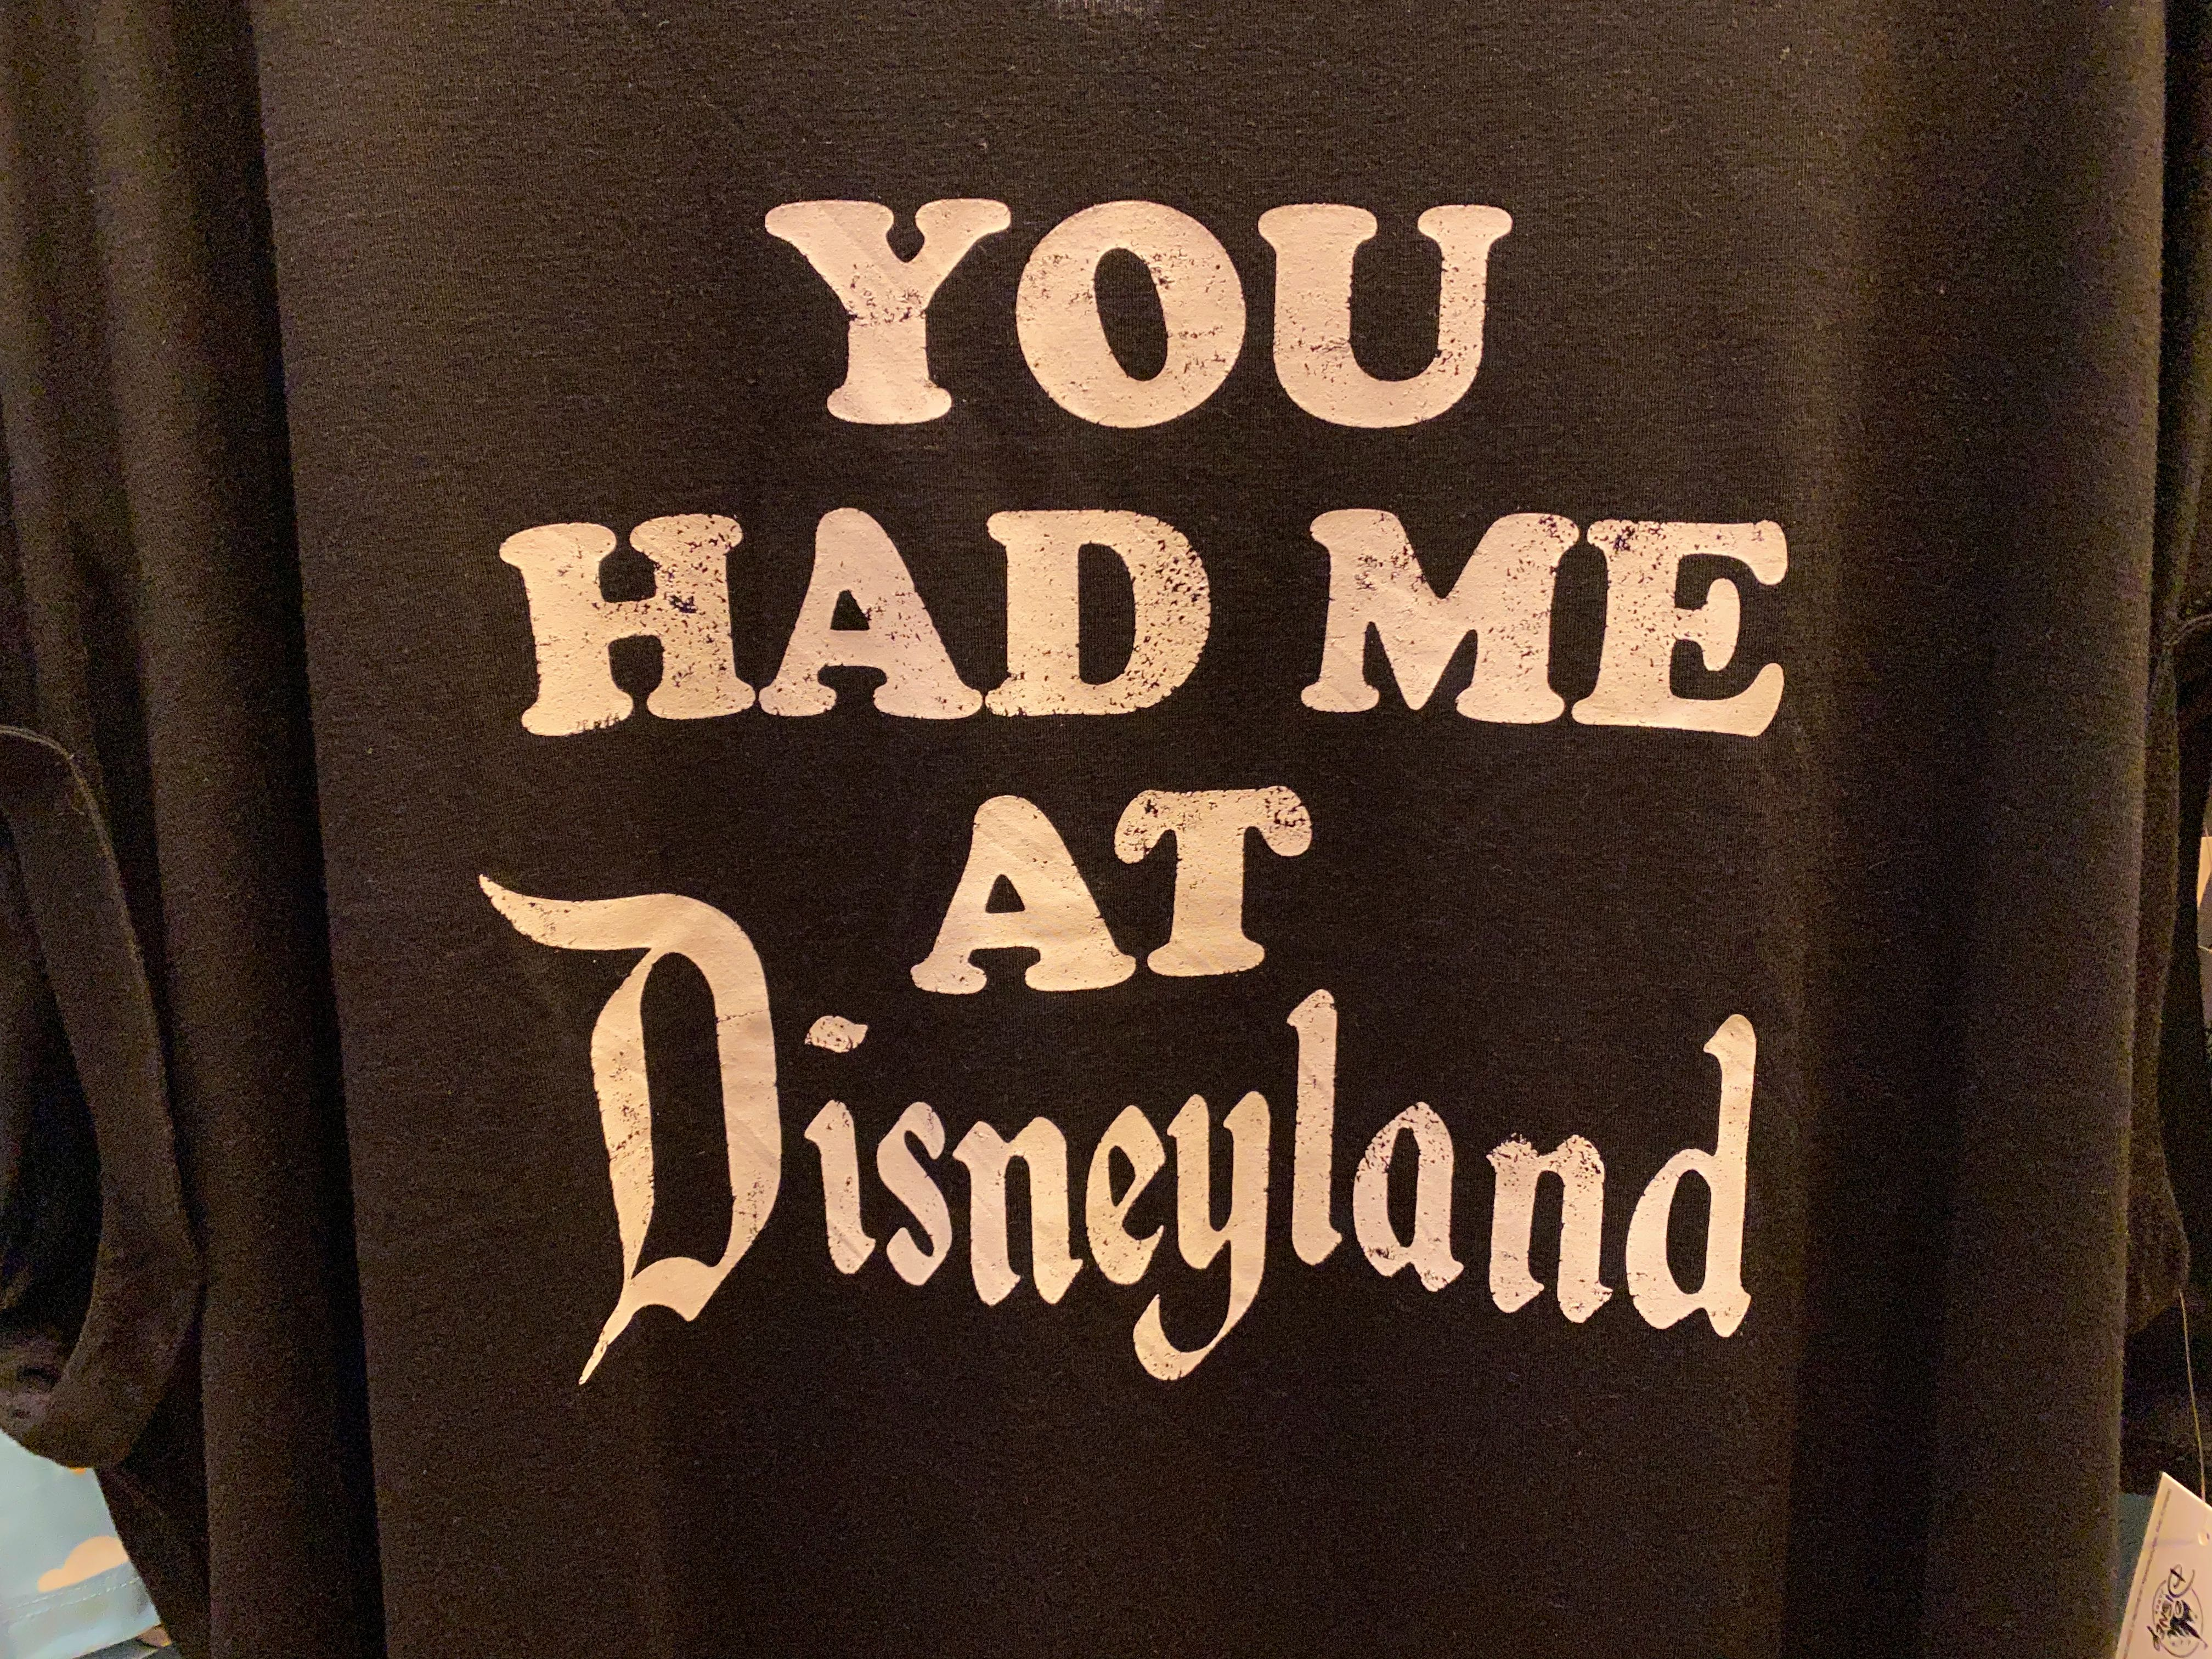 disneyland-icon-merch-02-23-2020-18.jpg